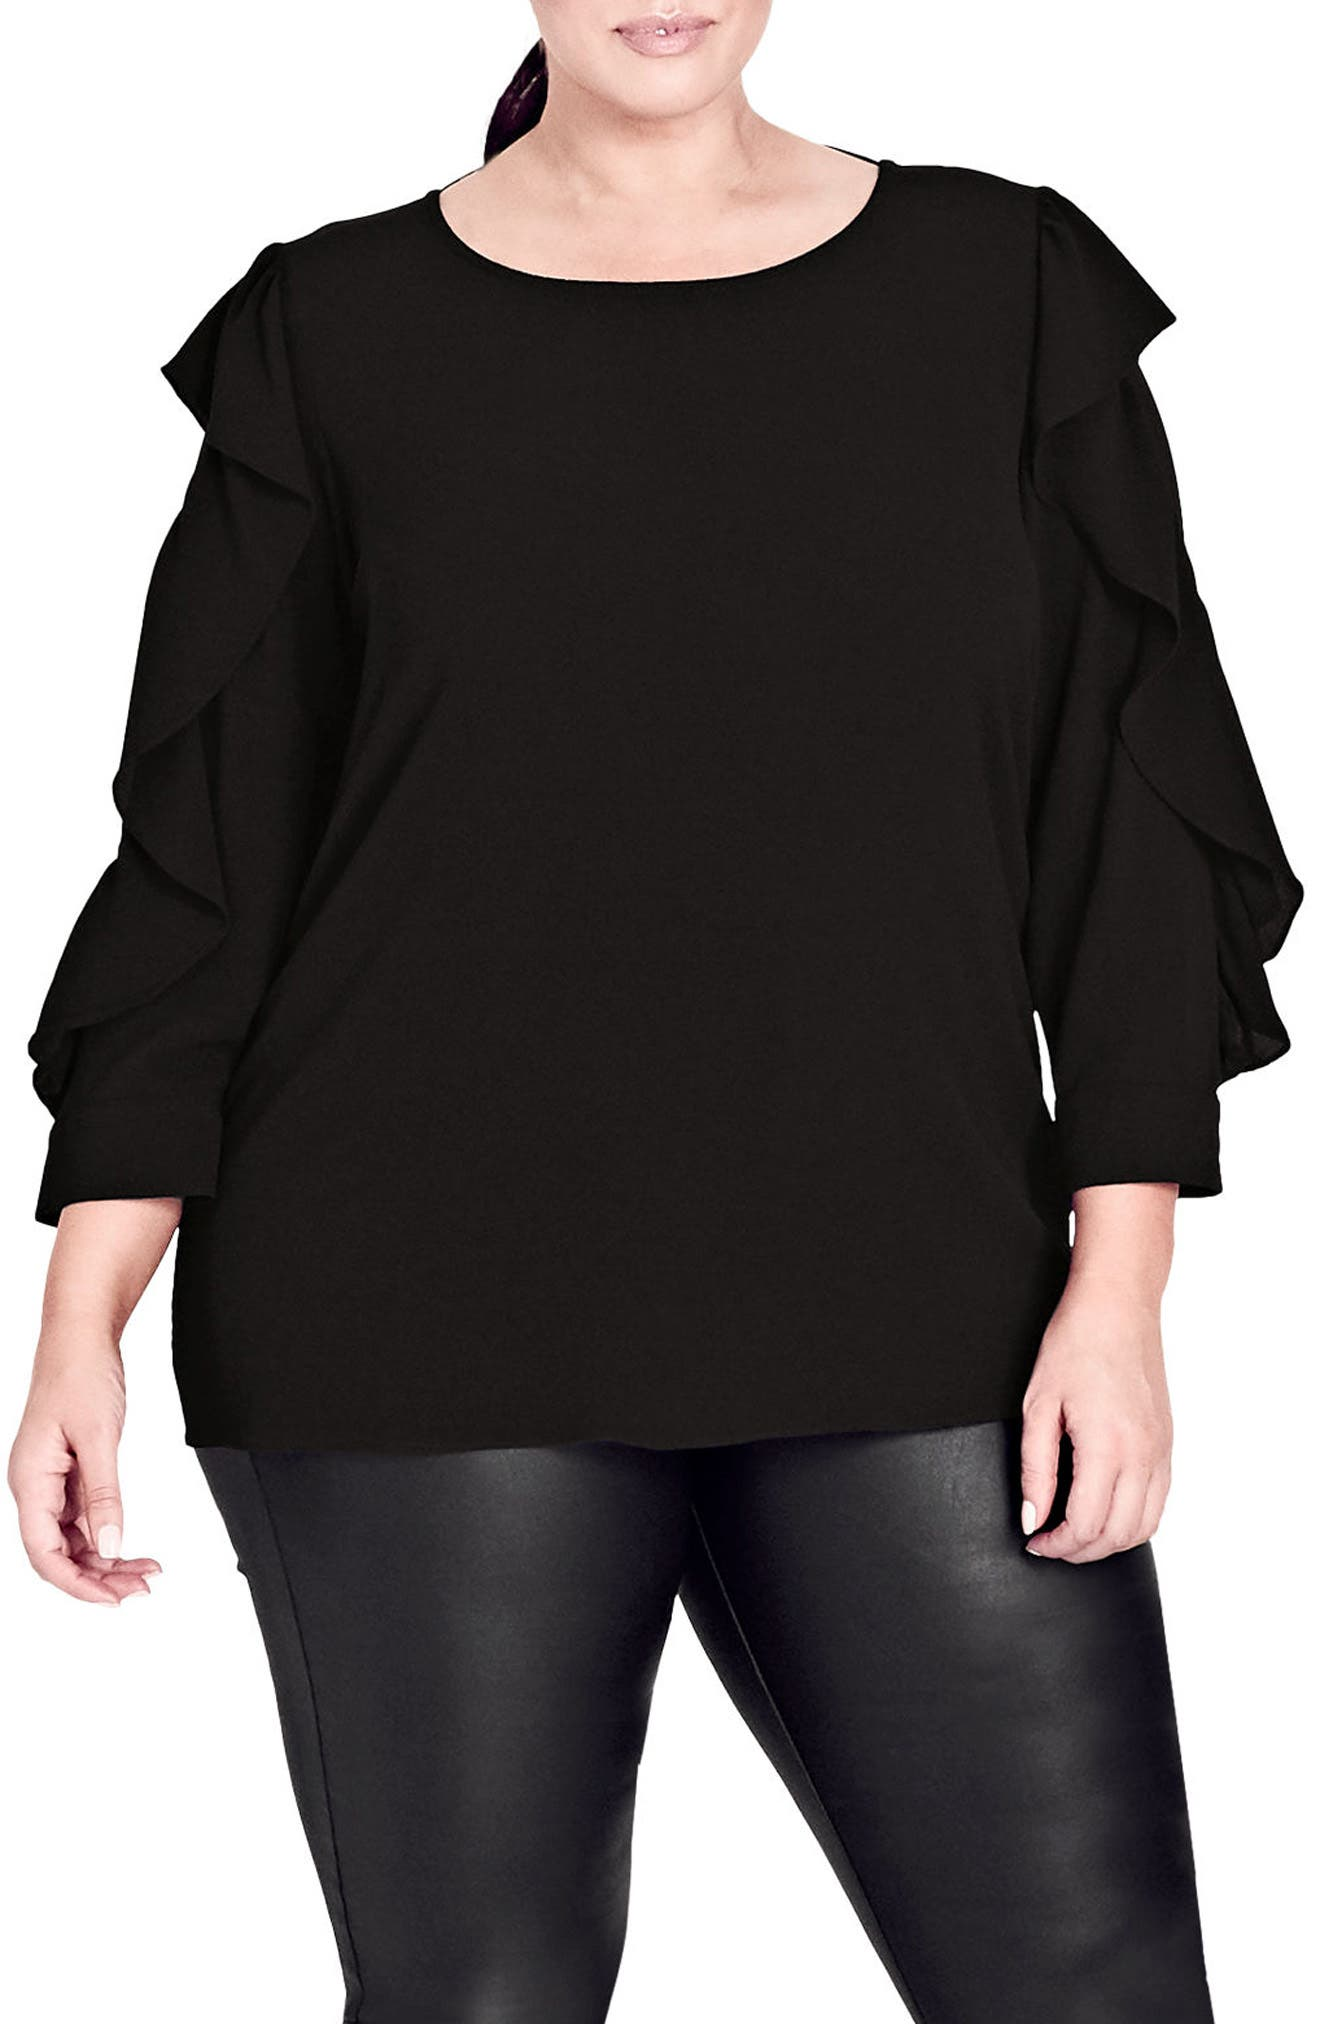 Alternate Image 1 Selected - City Chic Ruffle Sleeve Button Back Shirt (Plus Size)